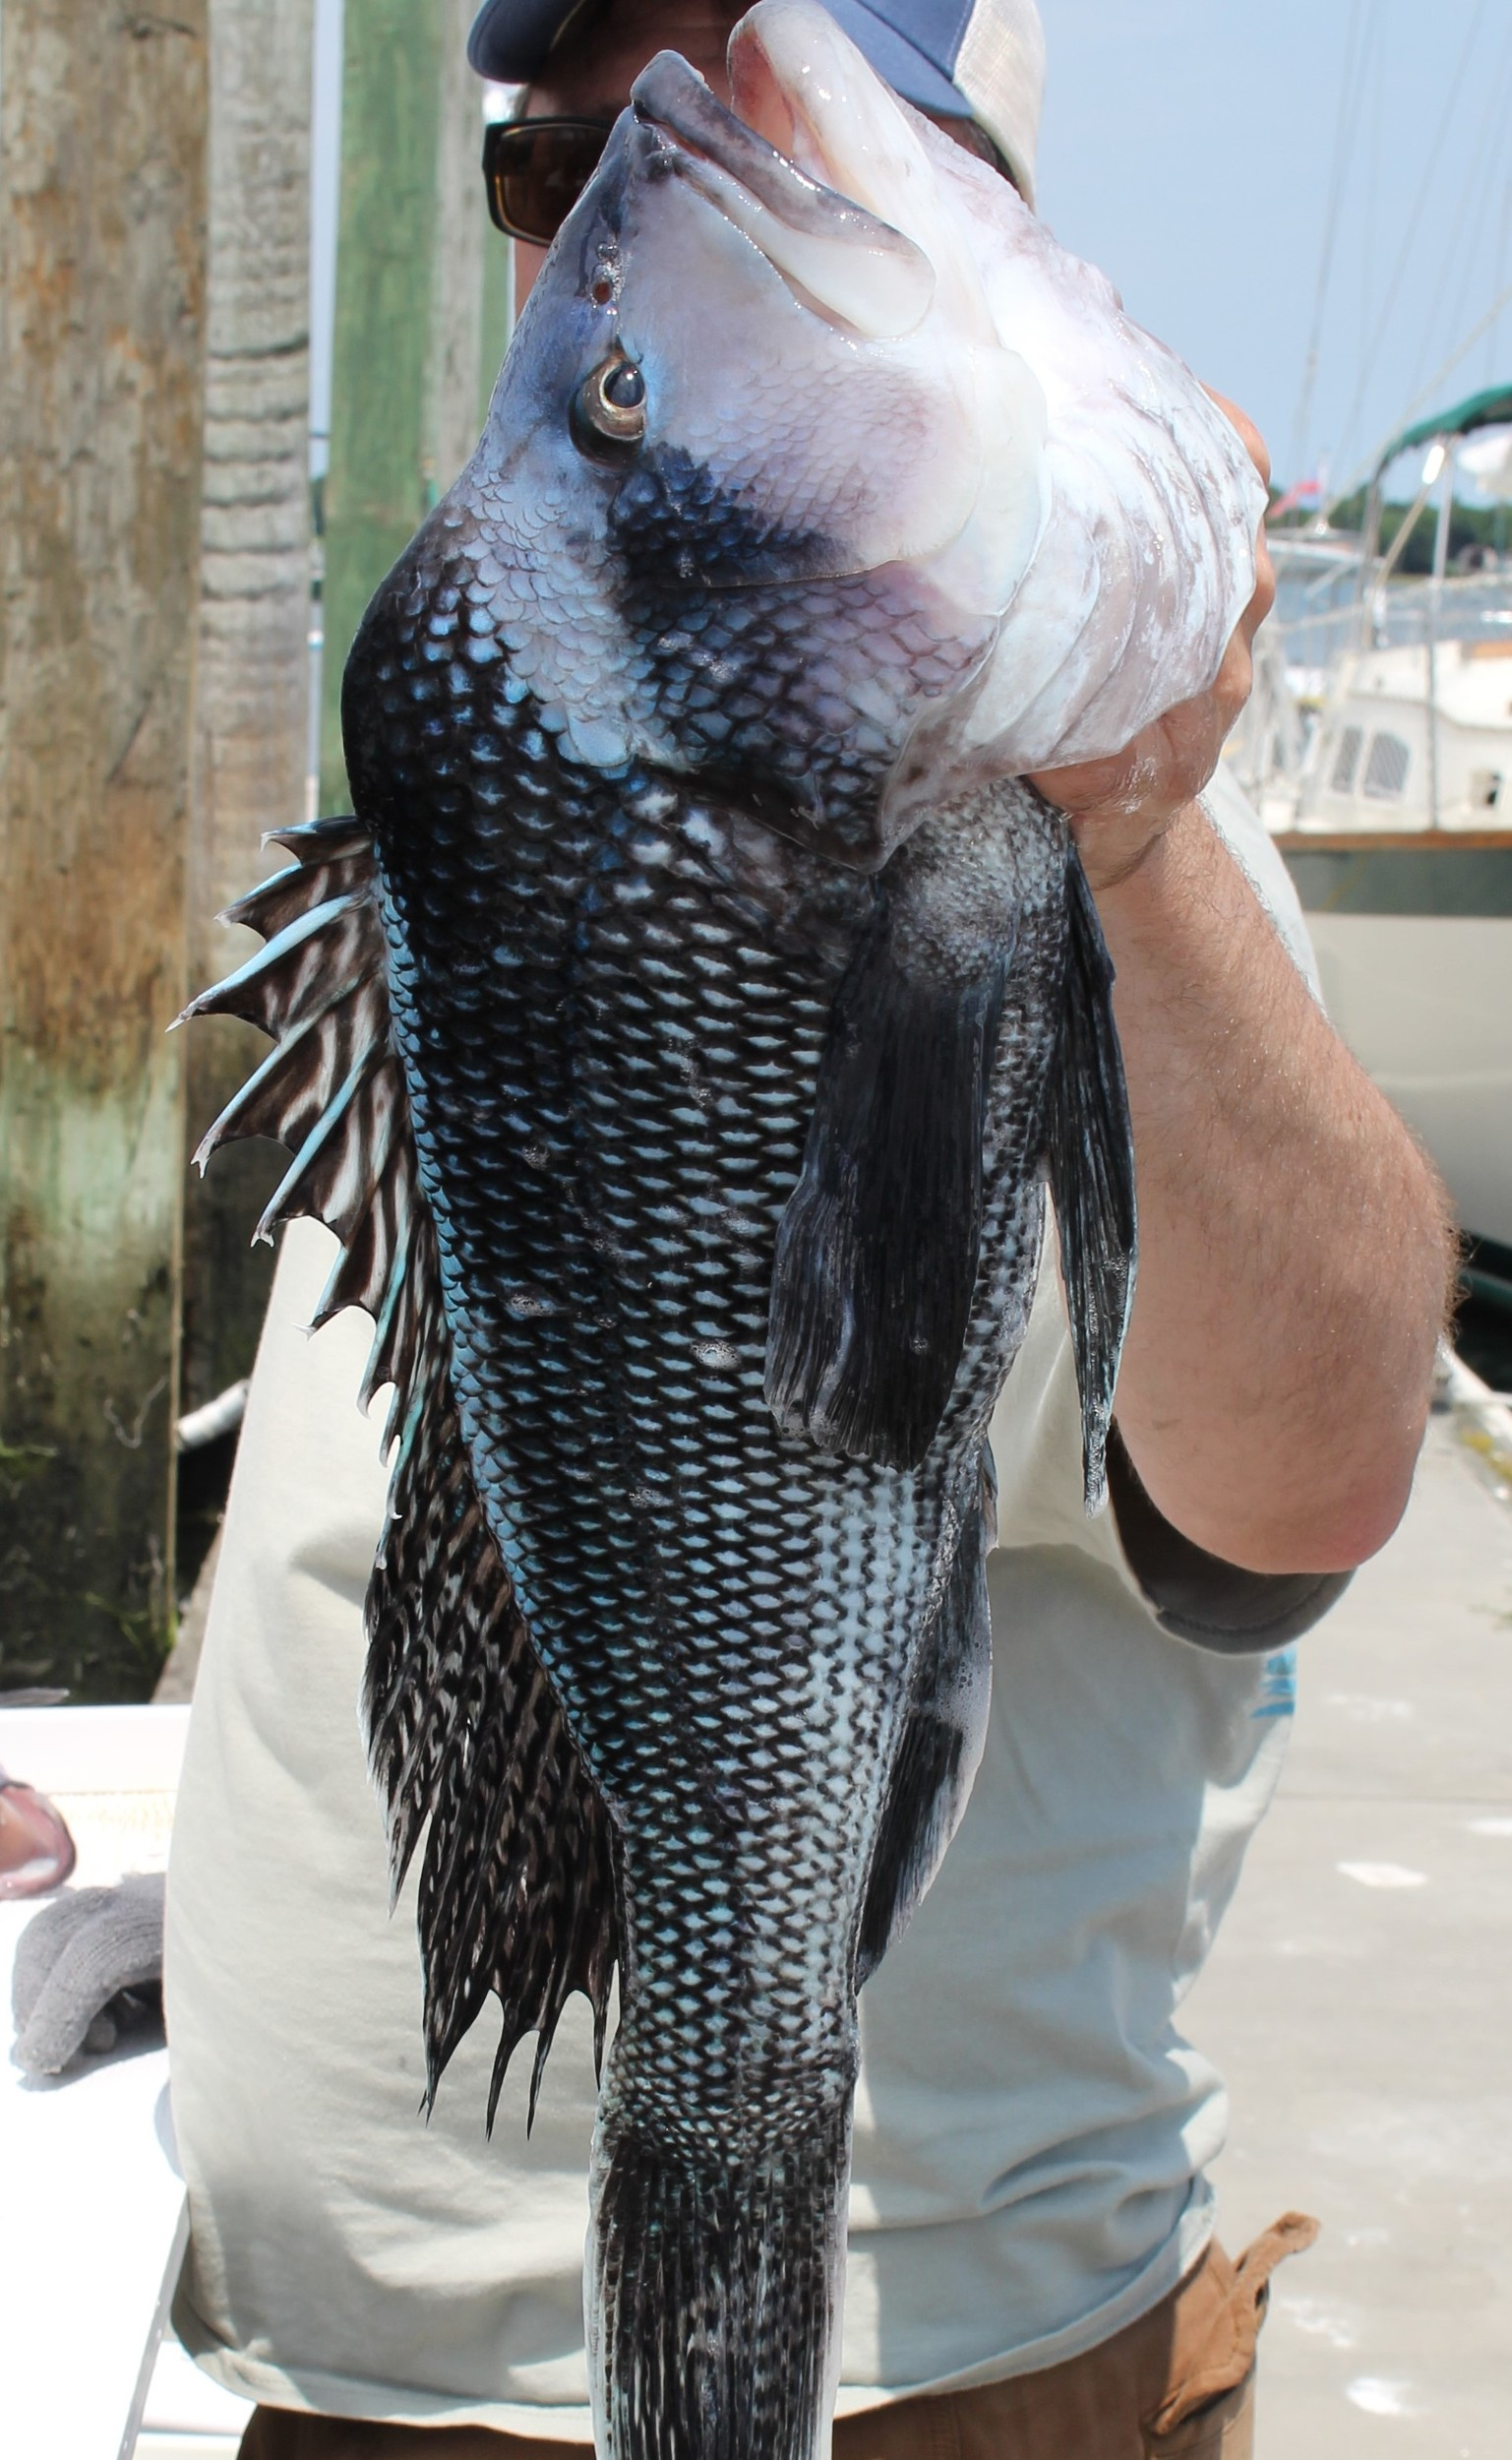 "24"" black sea bass caught off Newport last week. The largest on record in the US is 26""."